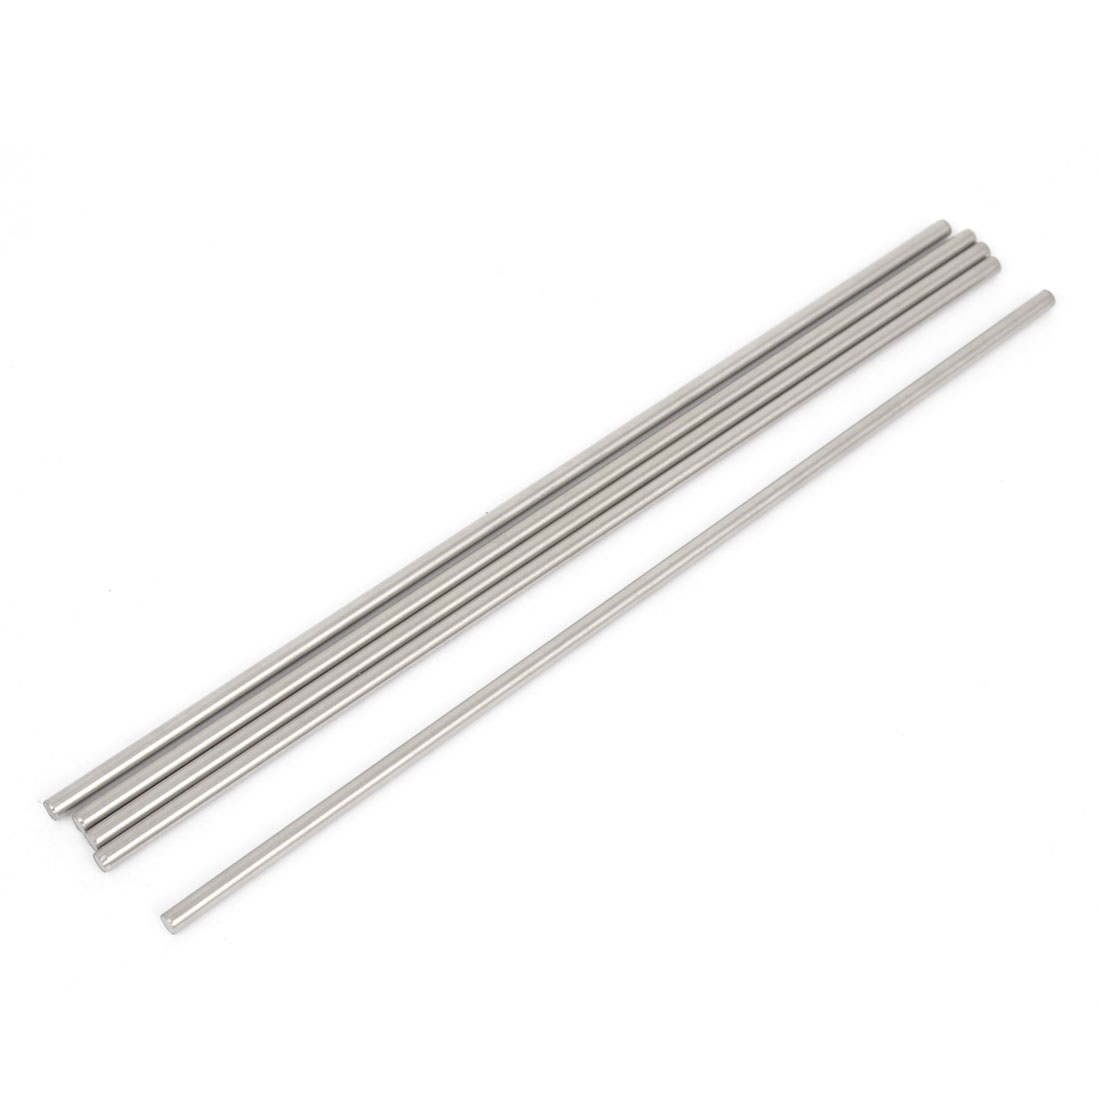 5 Pcs 3mm Dia 16cm Long Stainless Steel RC Helicopter Transmission Round Rods